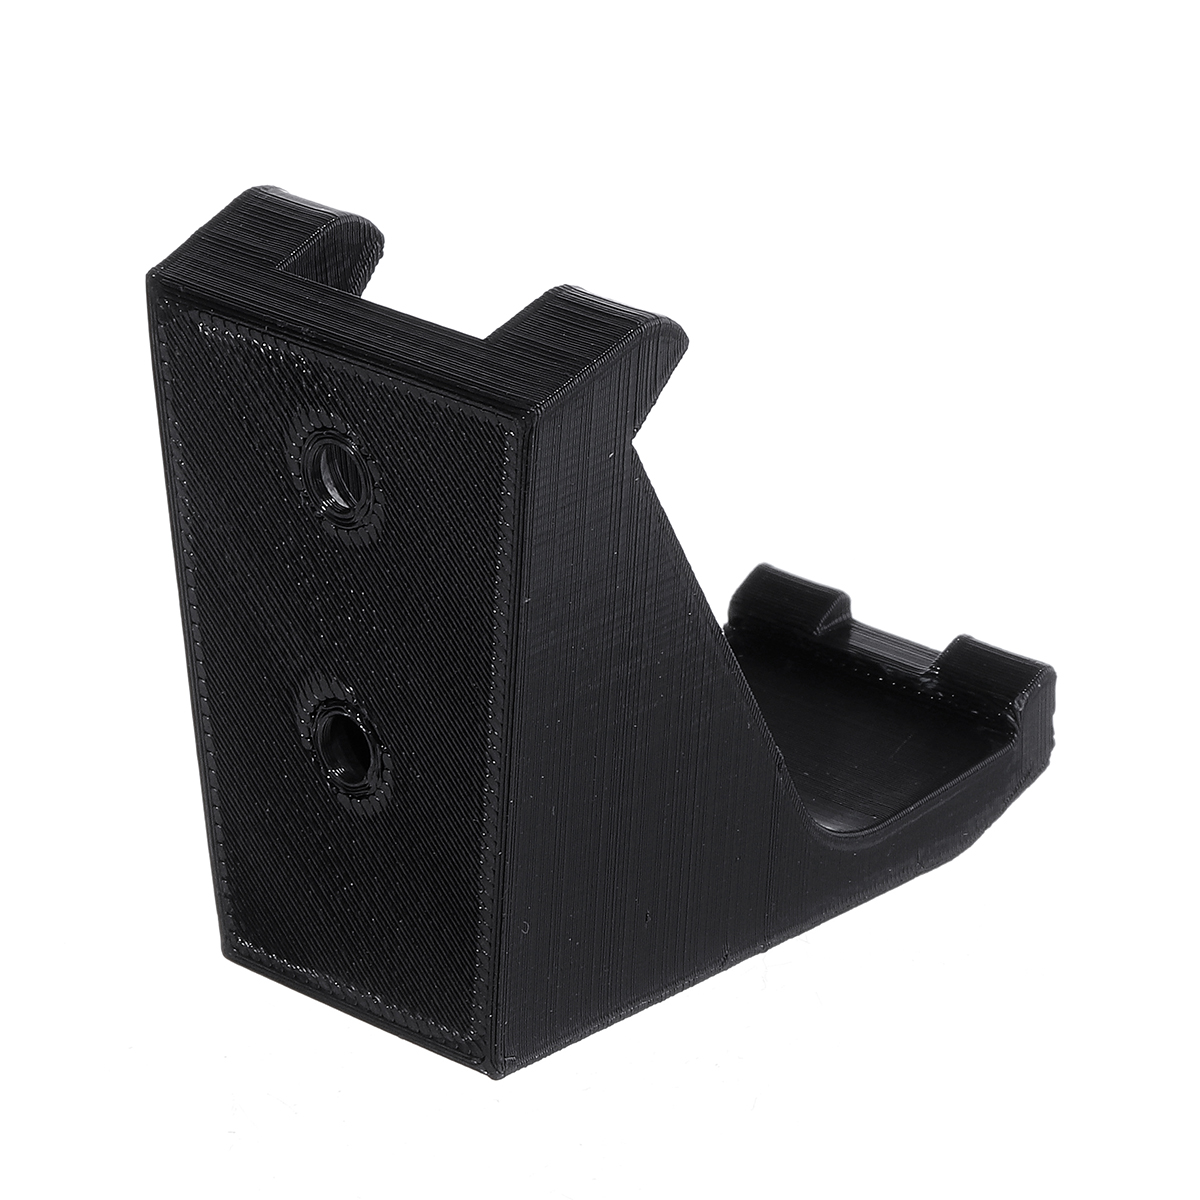 Wall Holder Dock Gamepad Stand Screws for Playstation 4 PS4 Game Controller 19